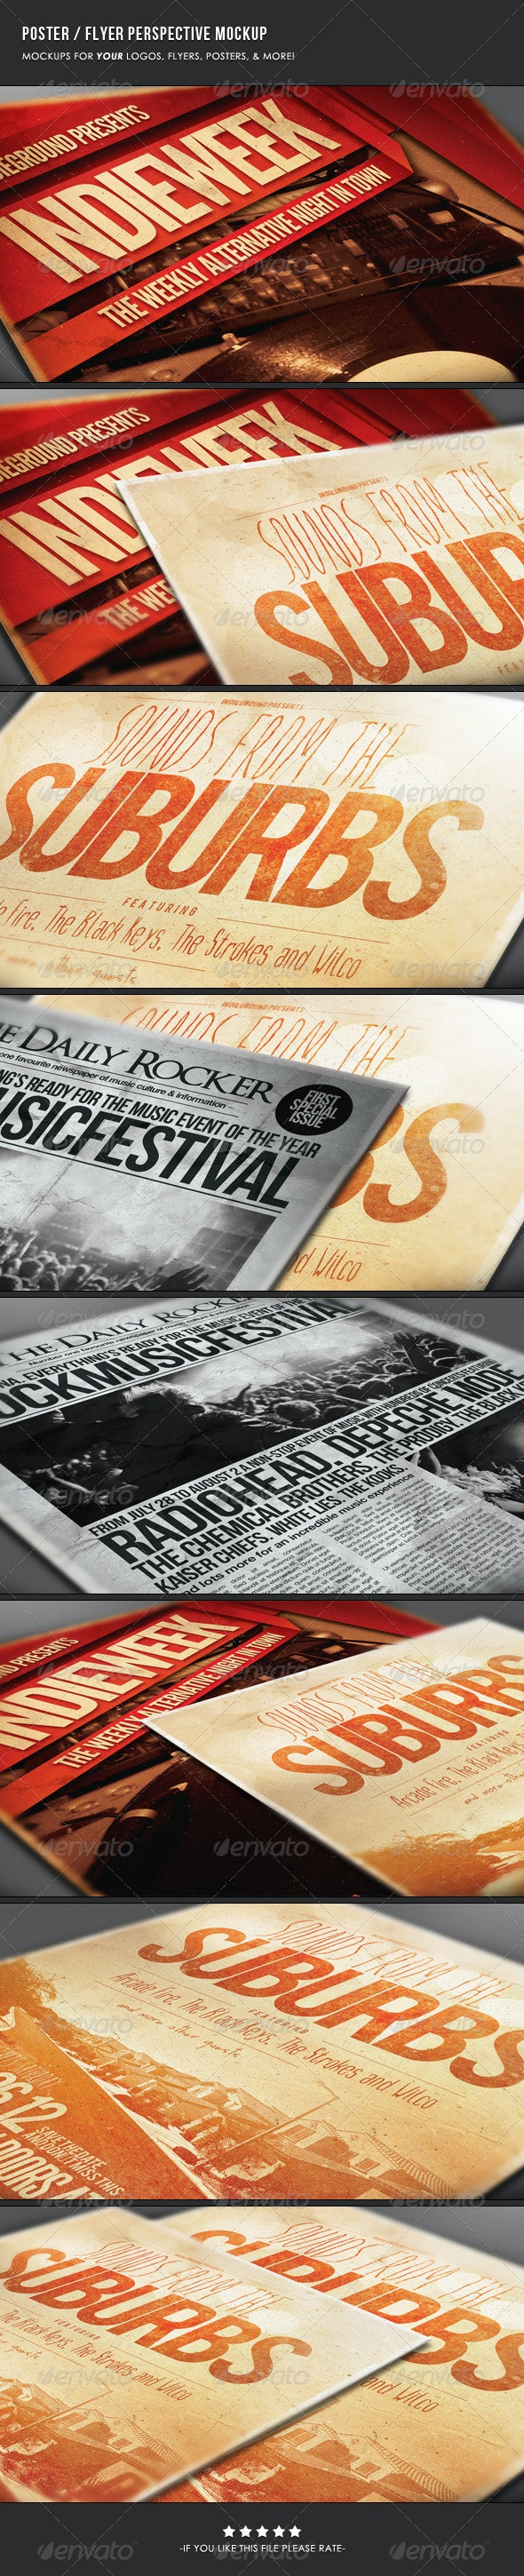 Poster & Flyer Perspective Mockup - Flyers Print